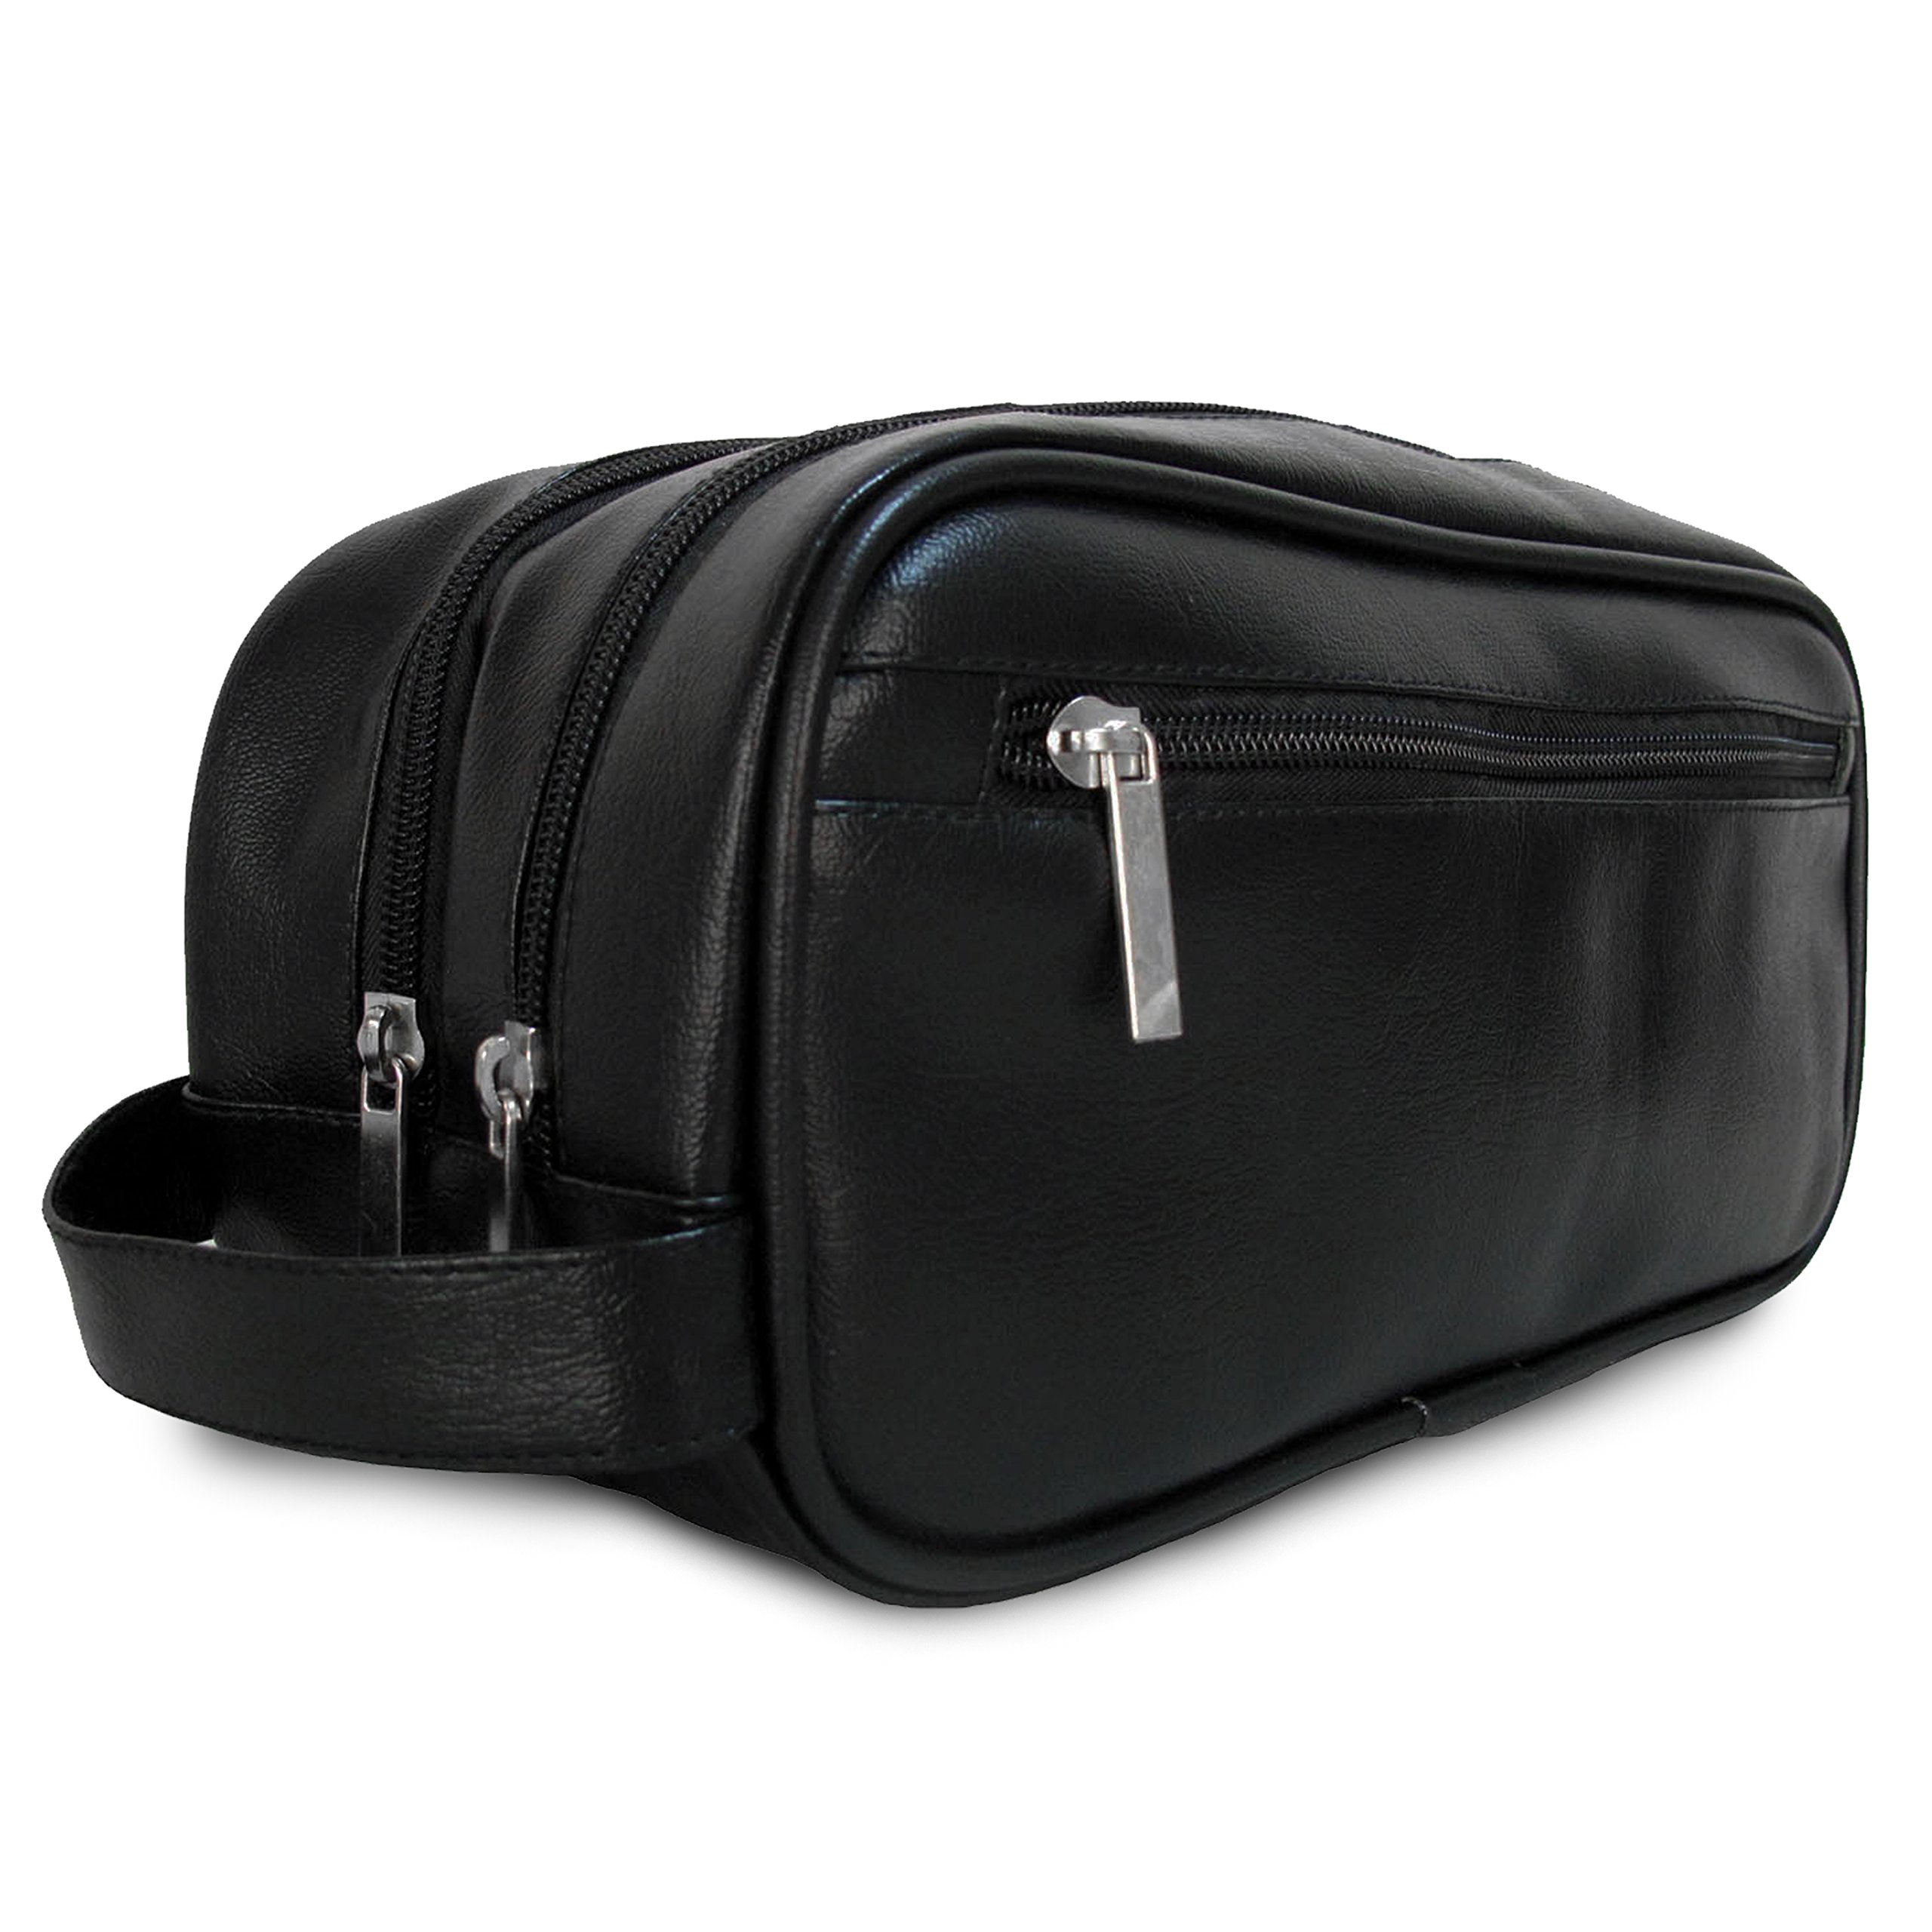 87c2208ded4f Mister Bag Leather Travel Toiletry Bag for Men or Women Waterproof. Travel  Size Toiletries Bag